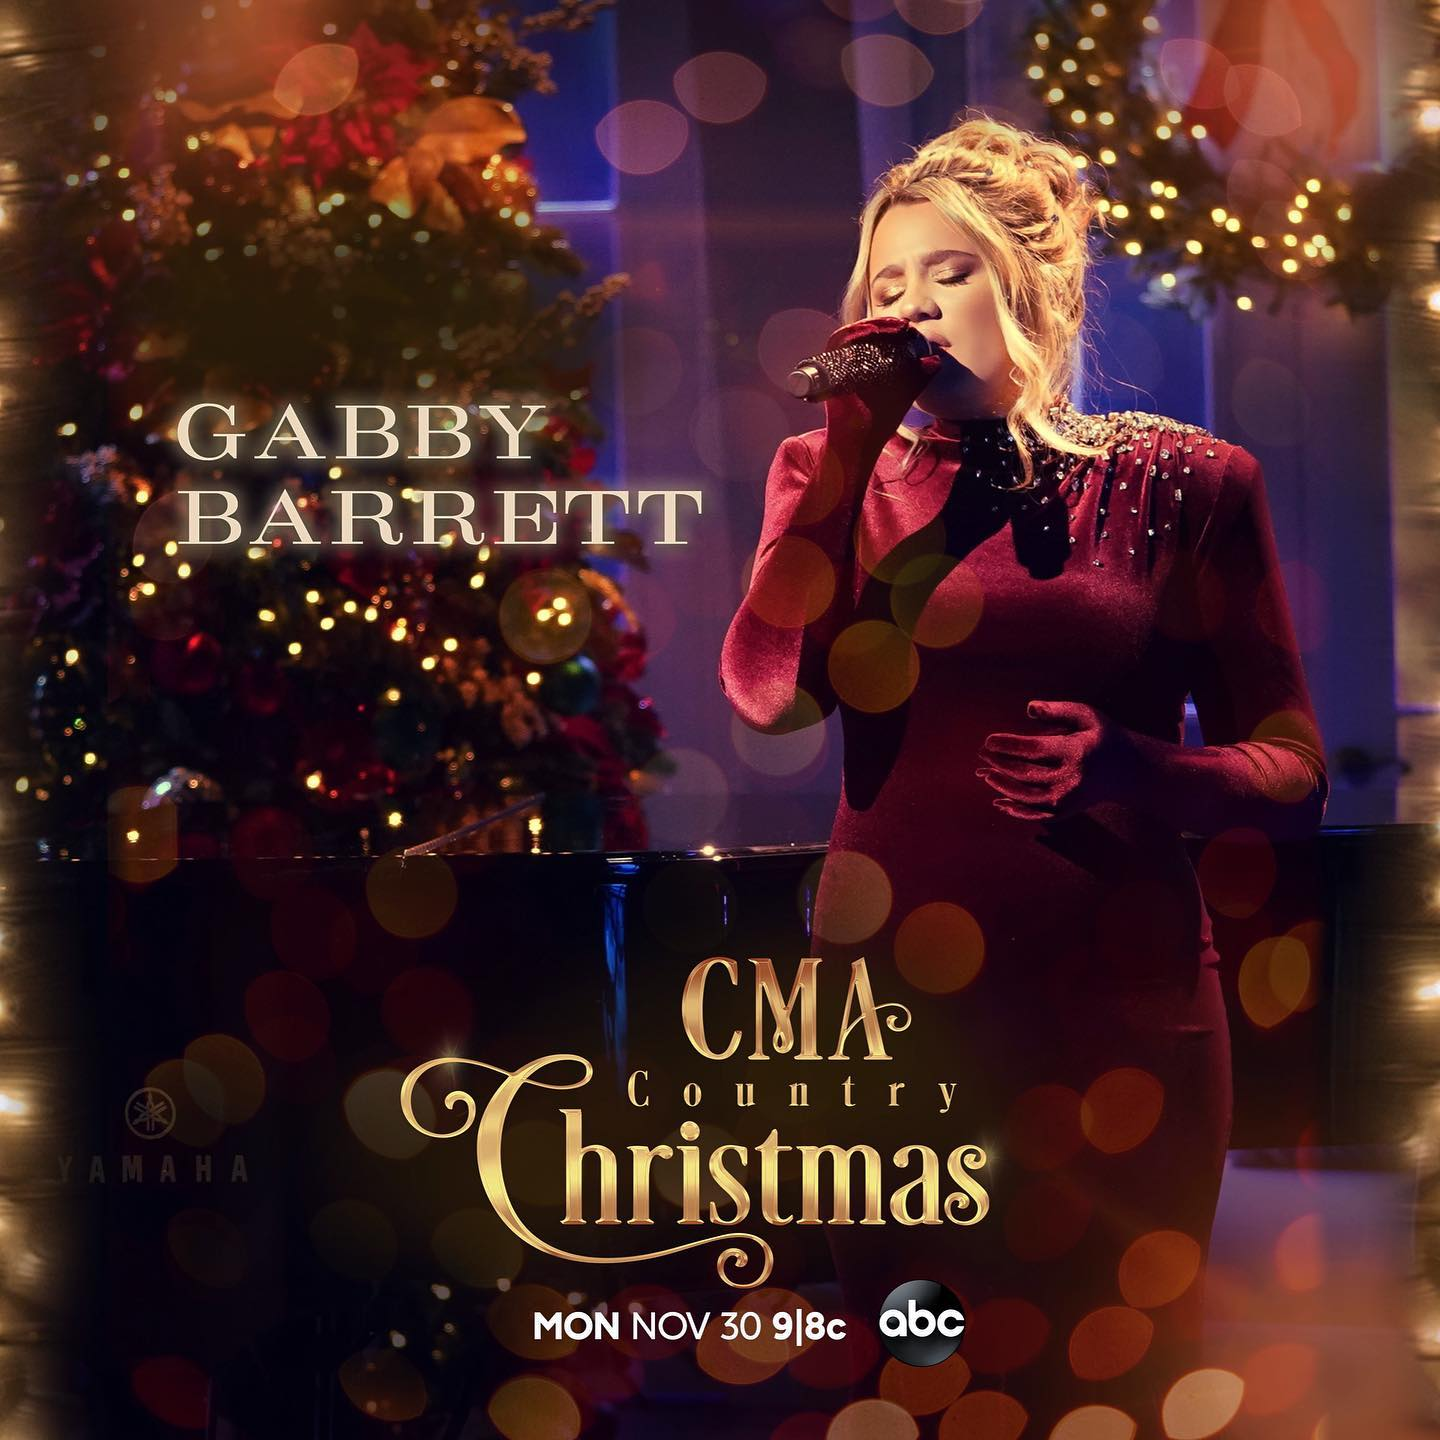 GABBY BARRETT PERFORMING DURING THE 11TH ANNUAL CMA COUNTRY CHRISTMAS AIRING ON ABC MONDAY, NOVEMBER 30, 2020